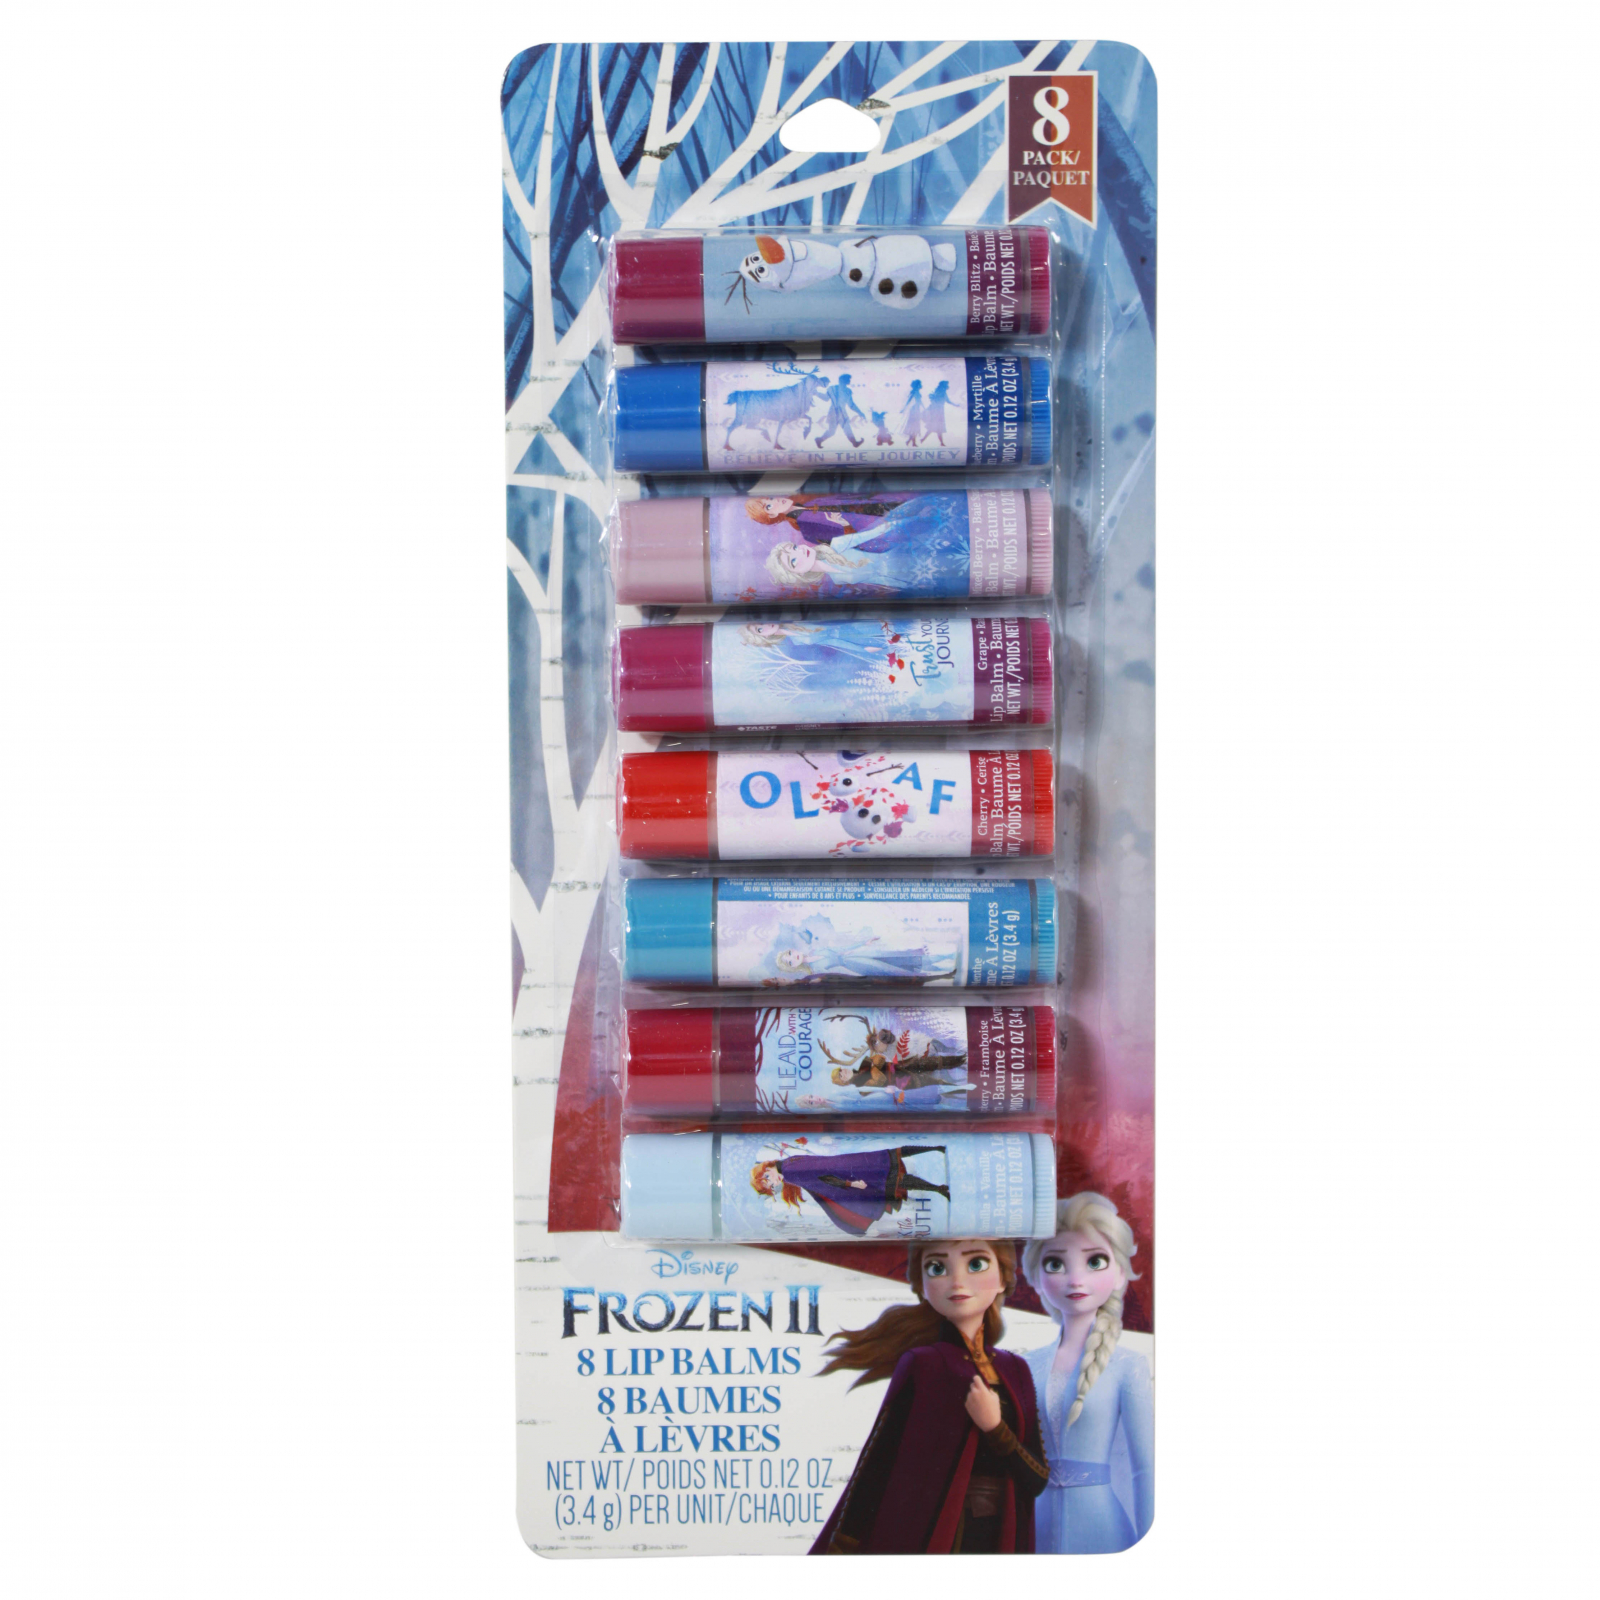 Frozen 2 Lip Balm 8 Pack With Assorted Colors And Flavors